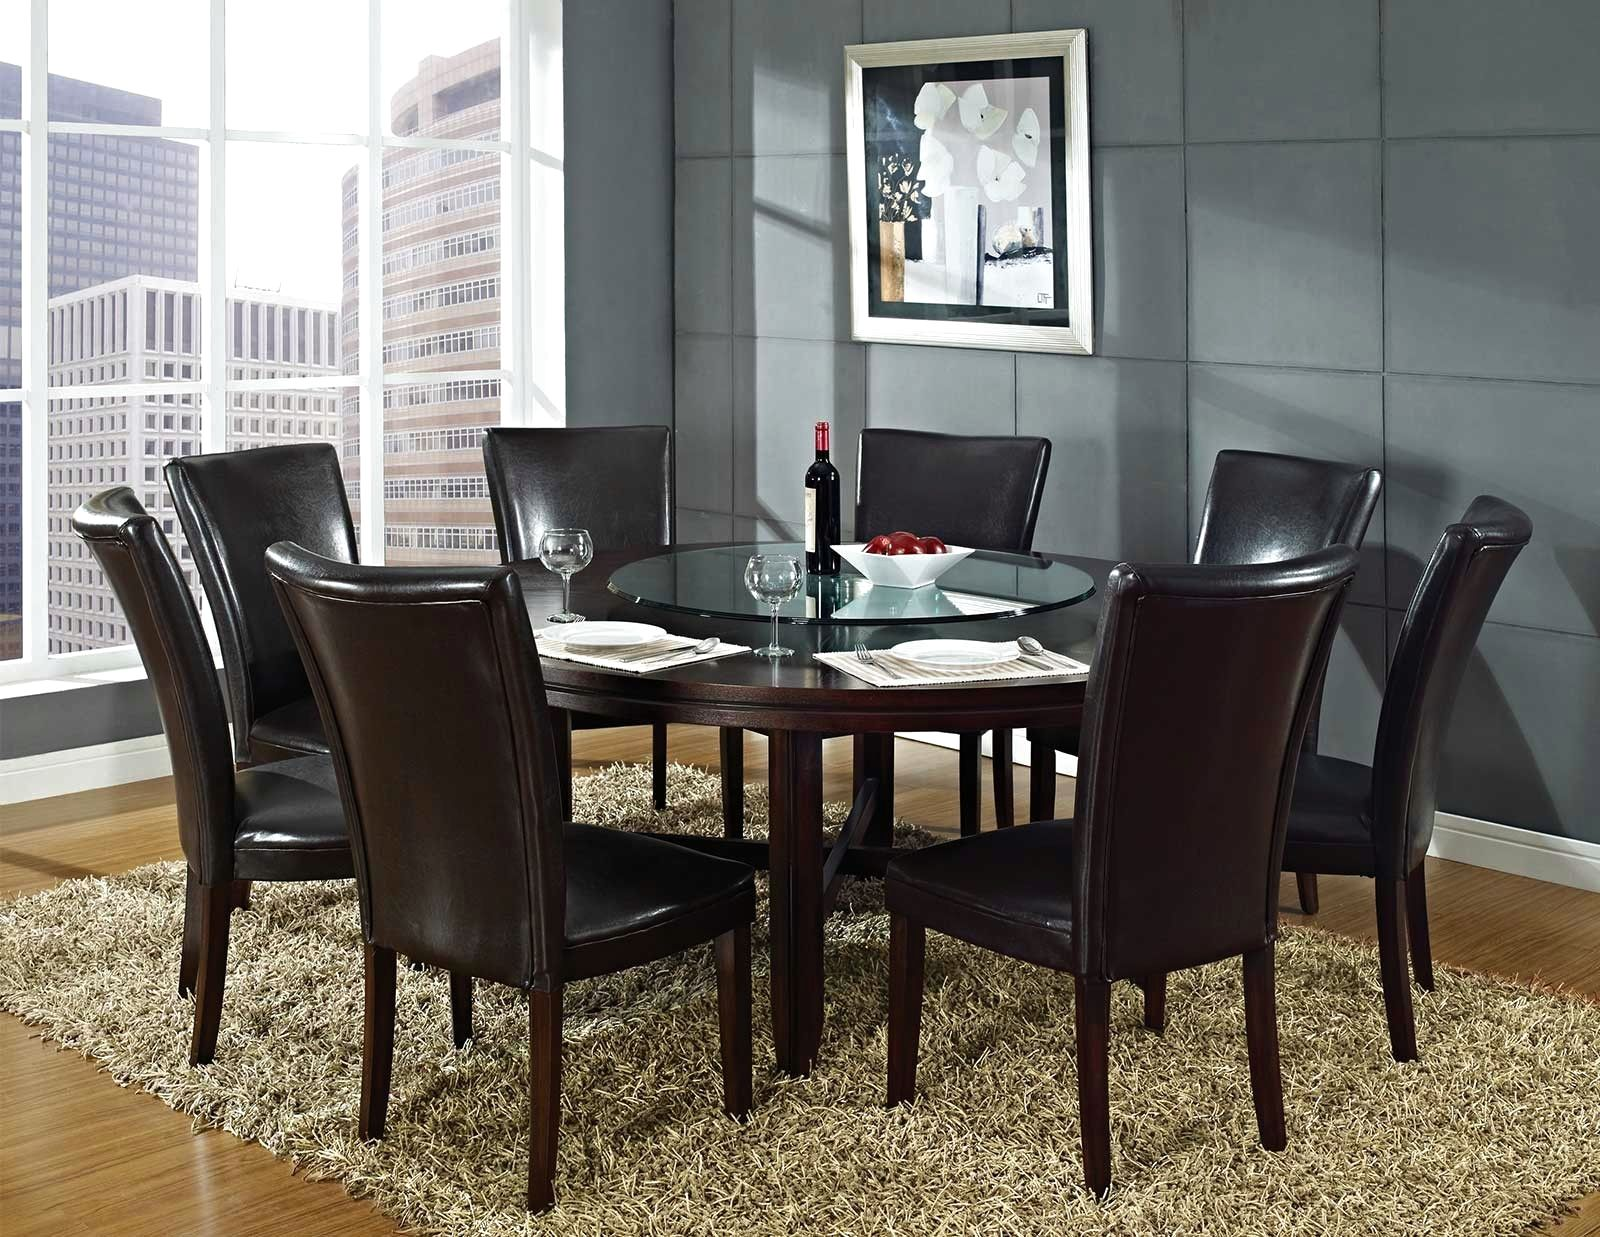 Choose Round Dining Table for 6 MidCityEast : Formal Round Dining Table for 6 Completing Cozy Dining Room with Dark Leather Chairs on Grey Carpet Flooring from midcityeast.com size 1600 x 1237 jpeg 326kB